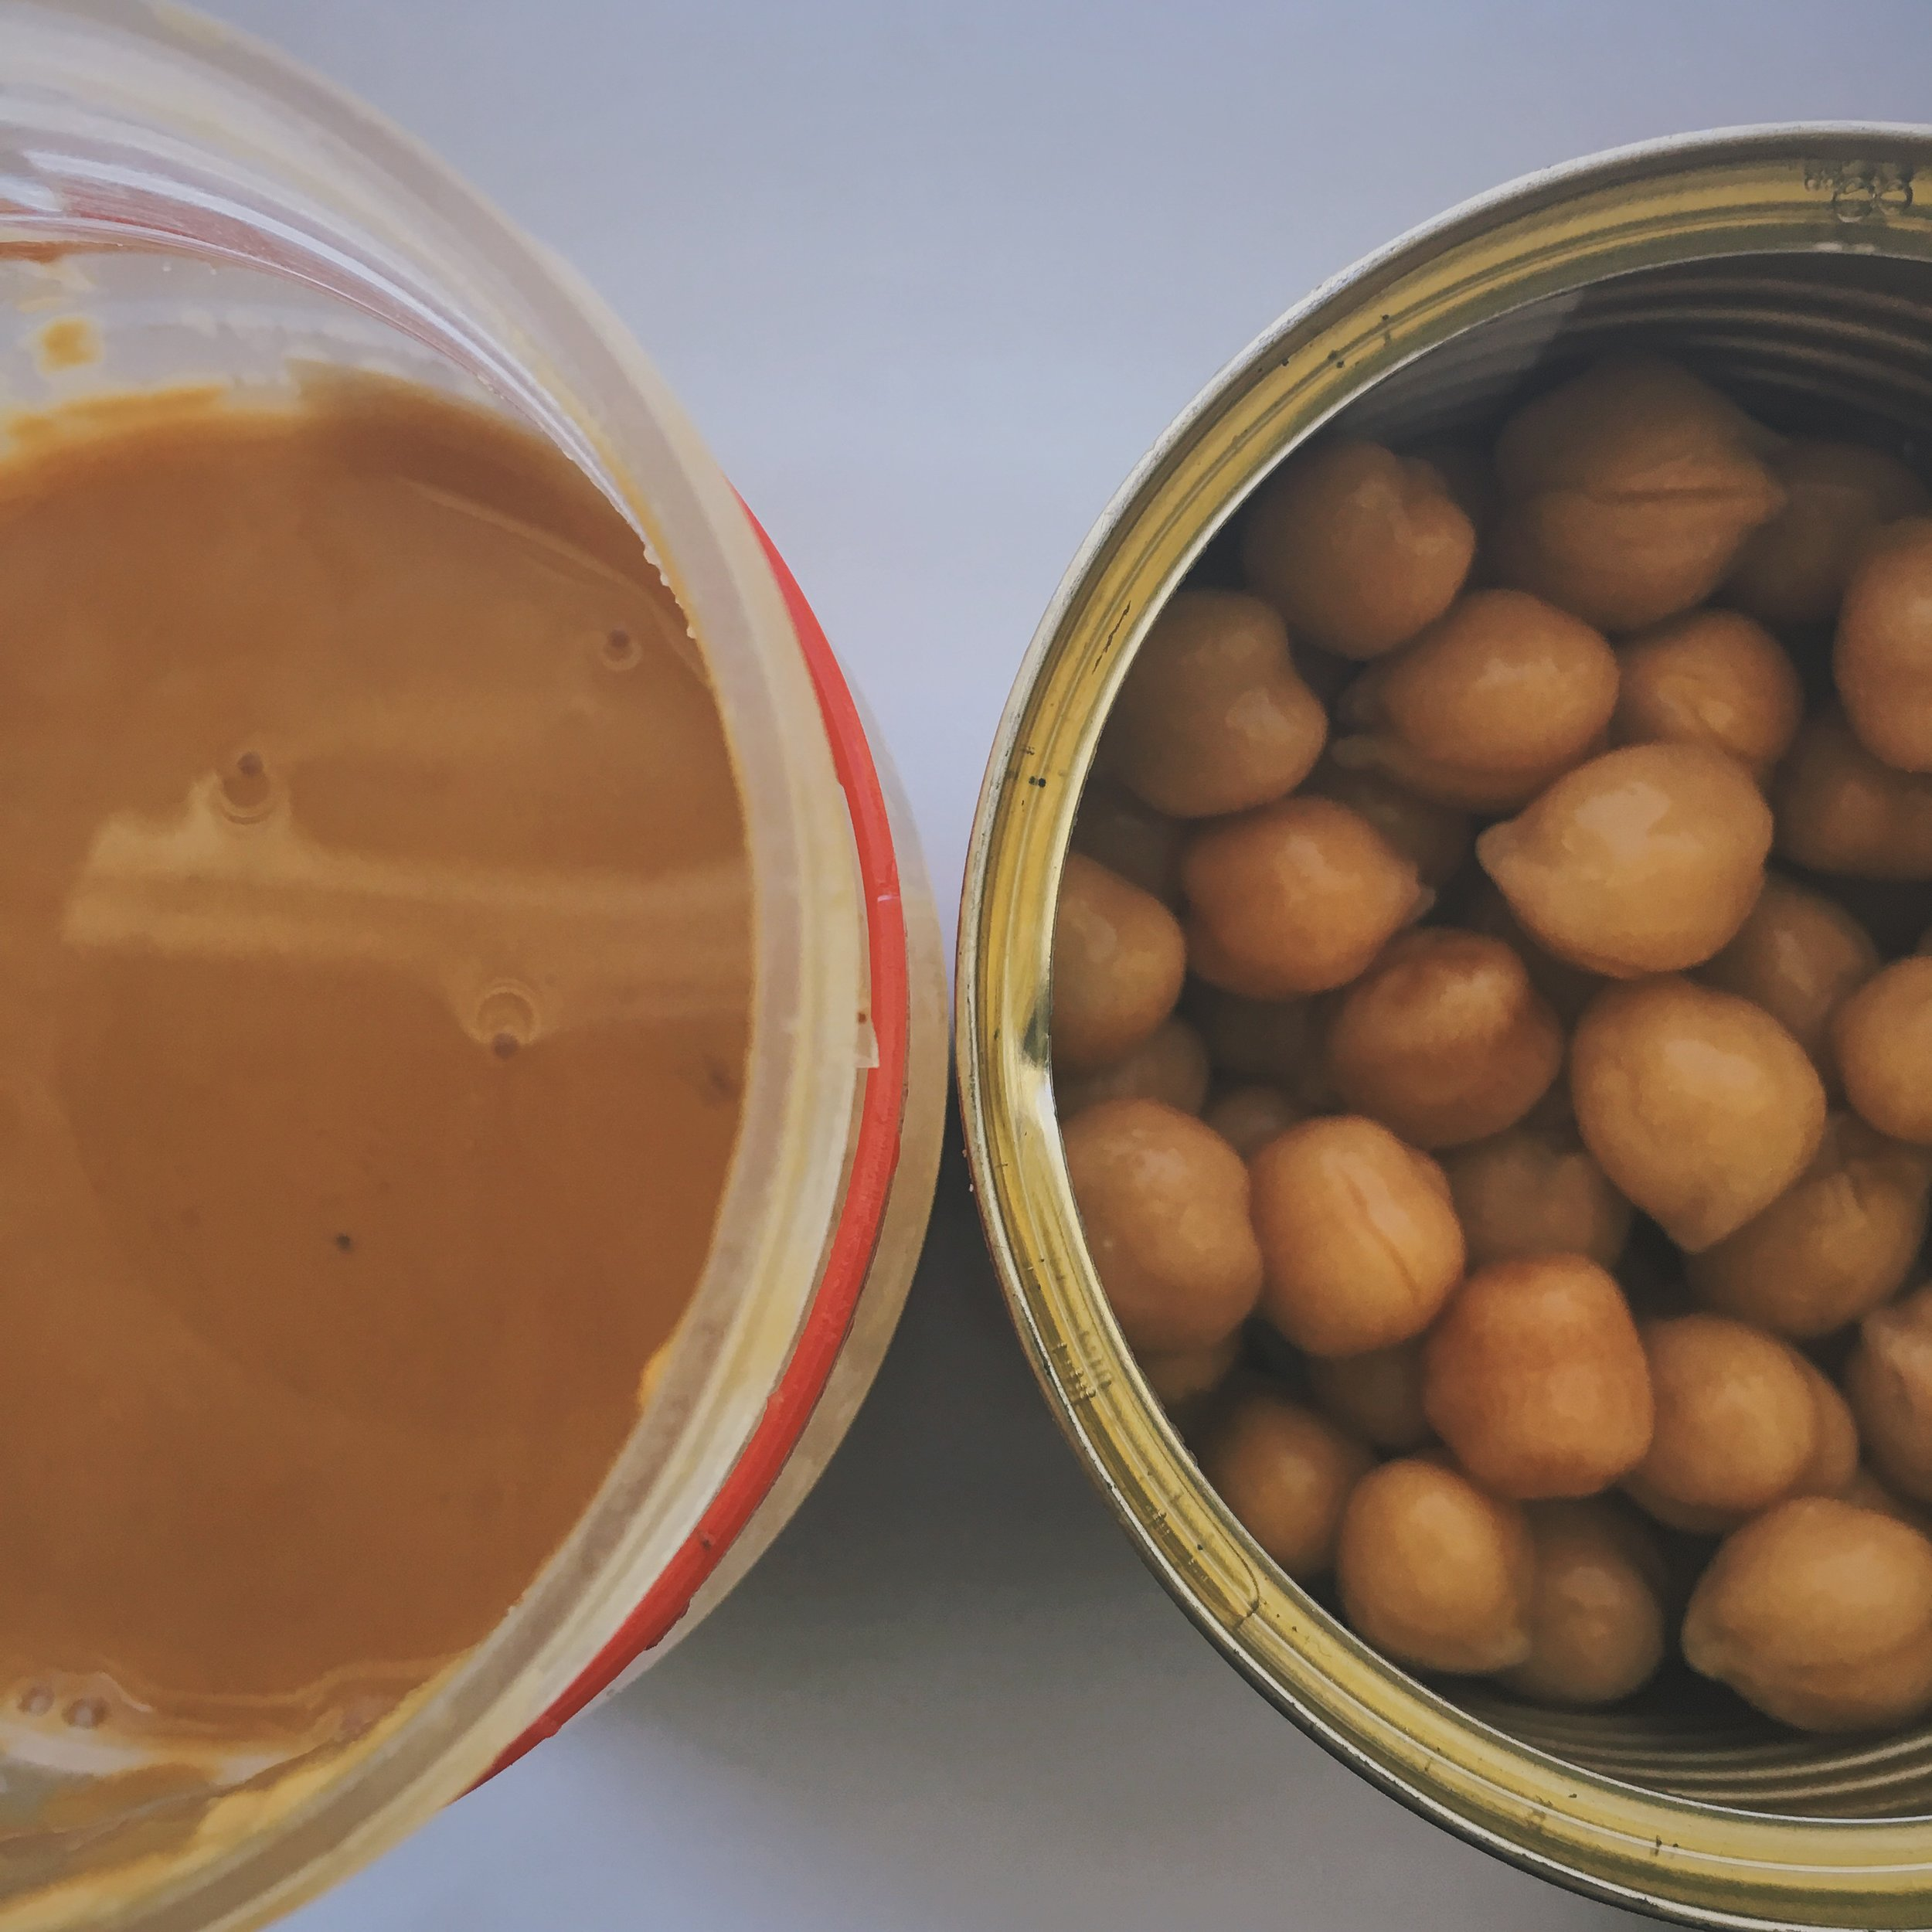 protein overload: peanut butter and chickpeas